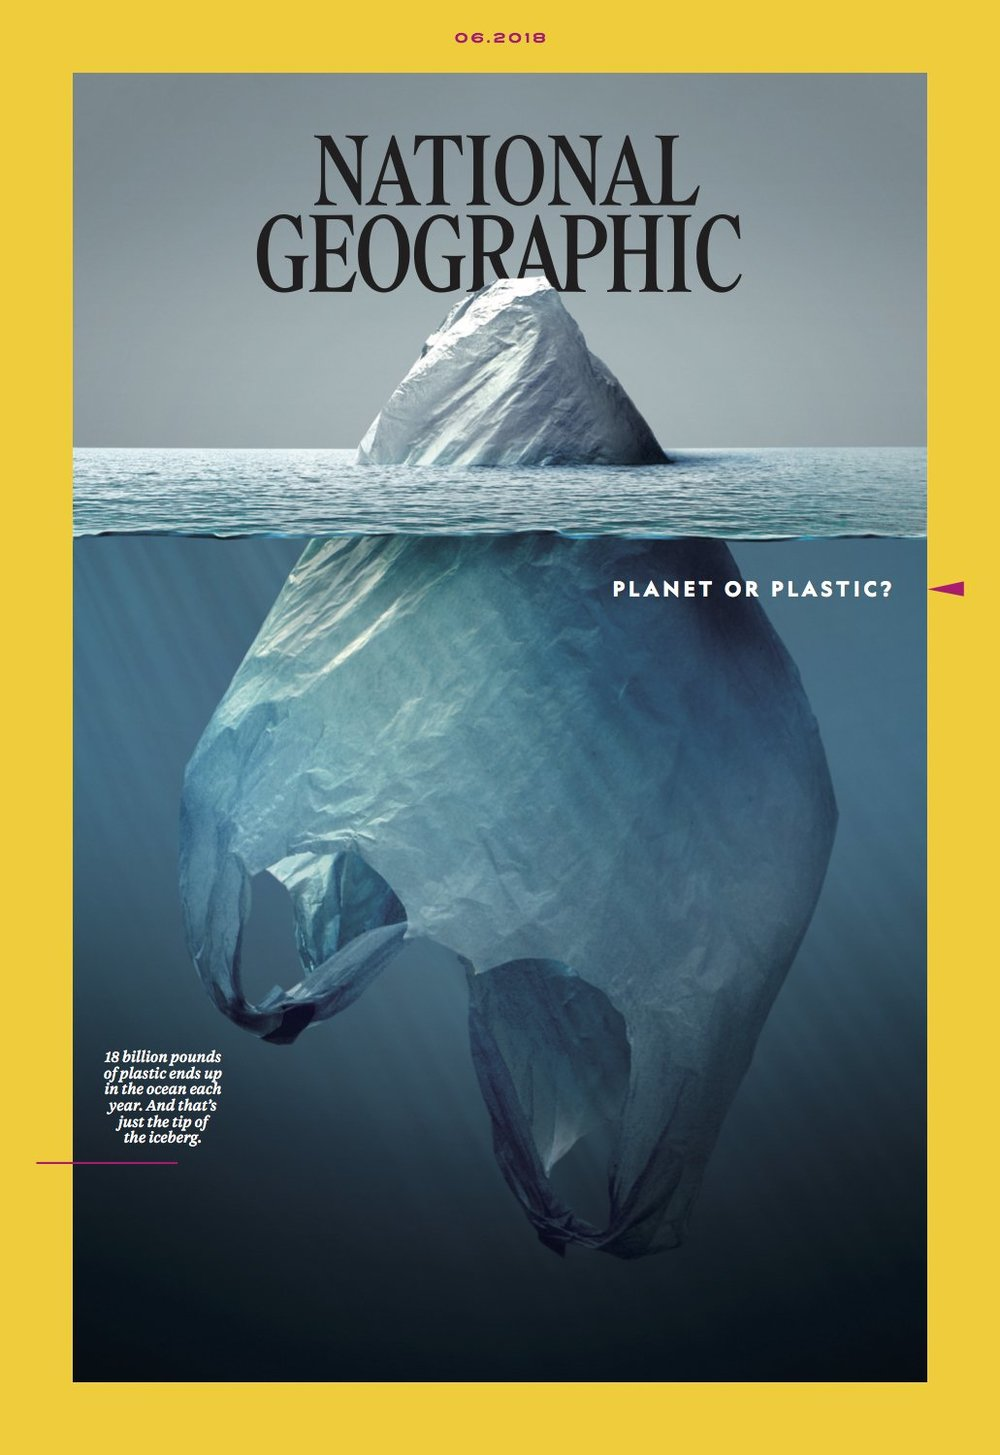 National Geographic June 2018 front cover: Planet or Plastic?